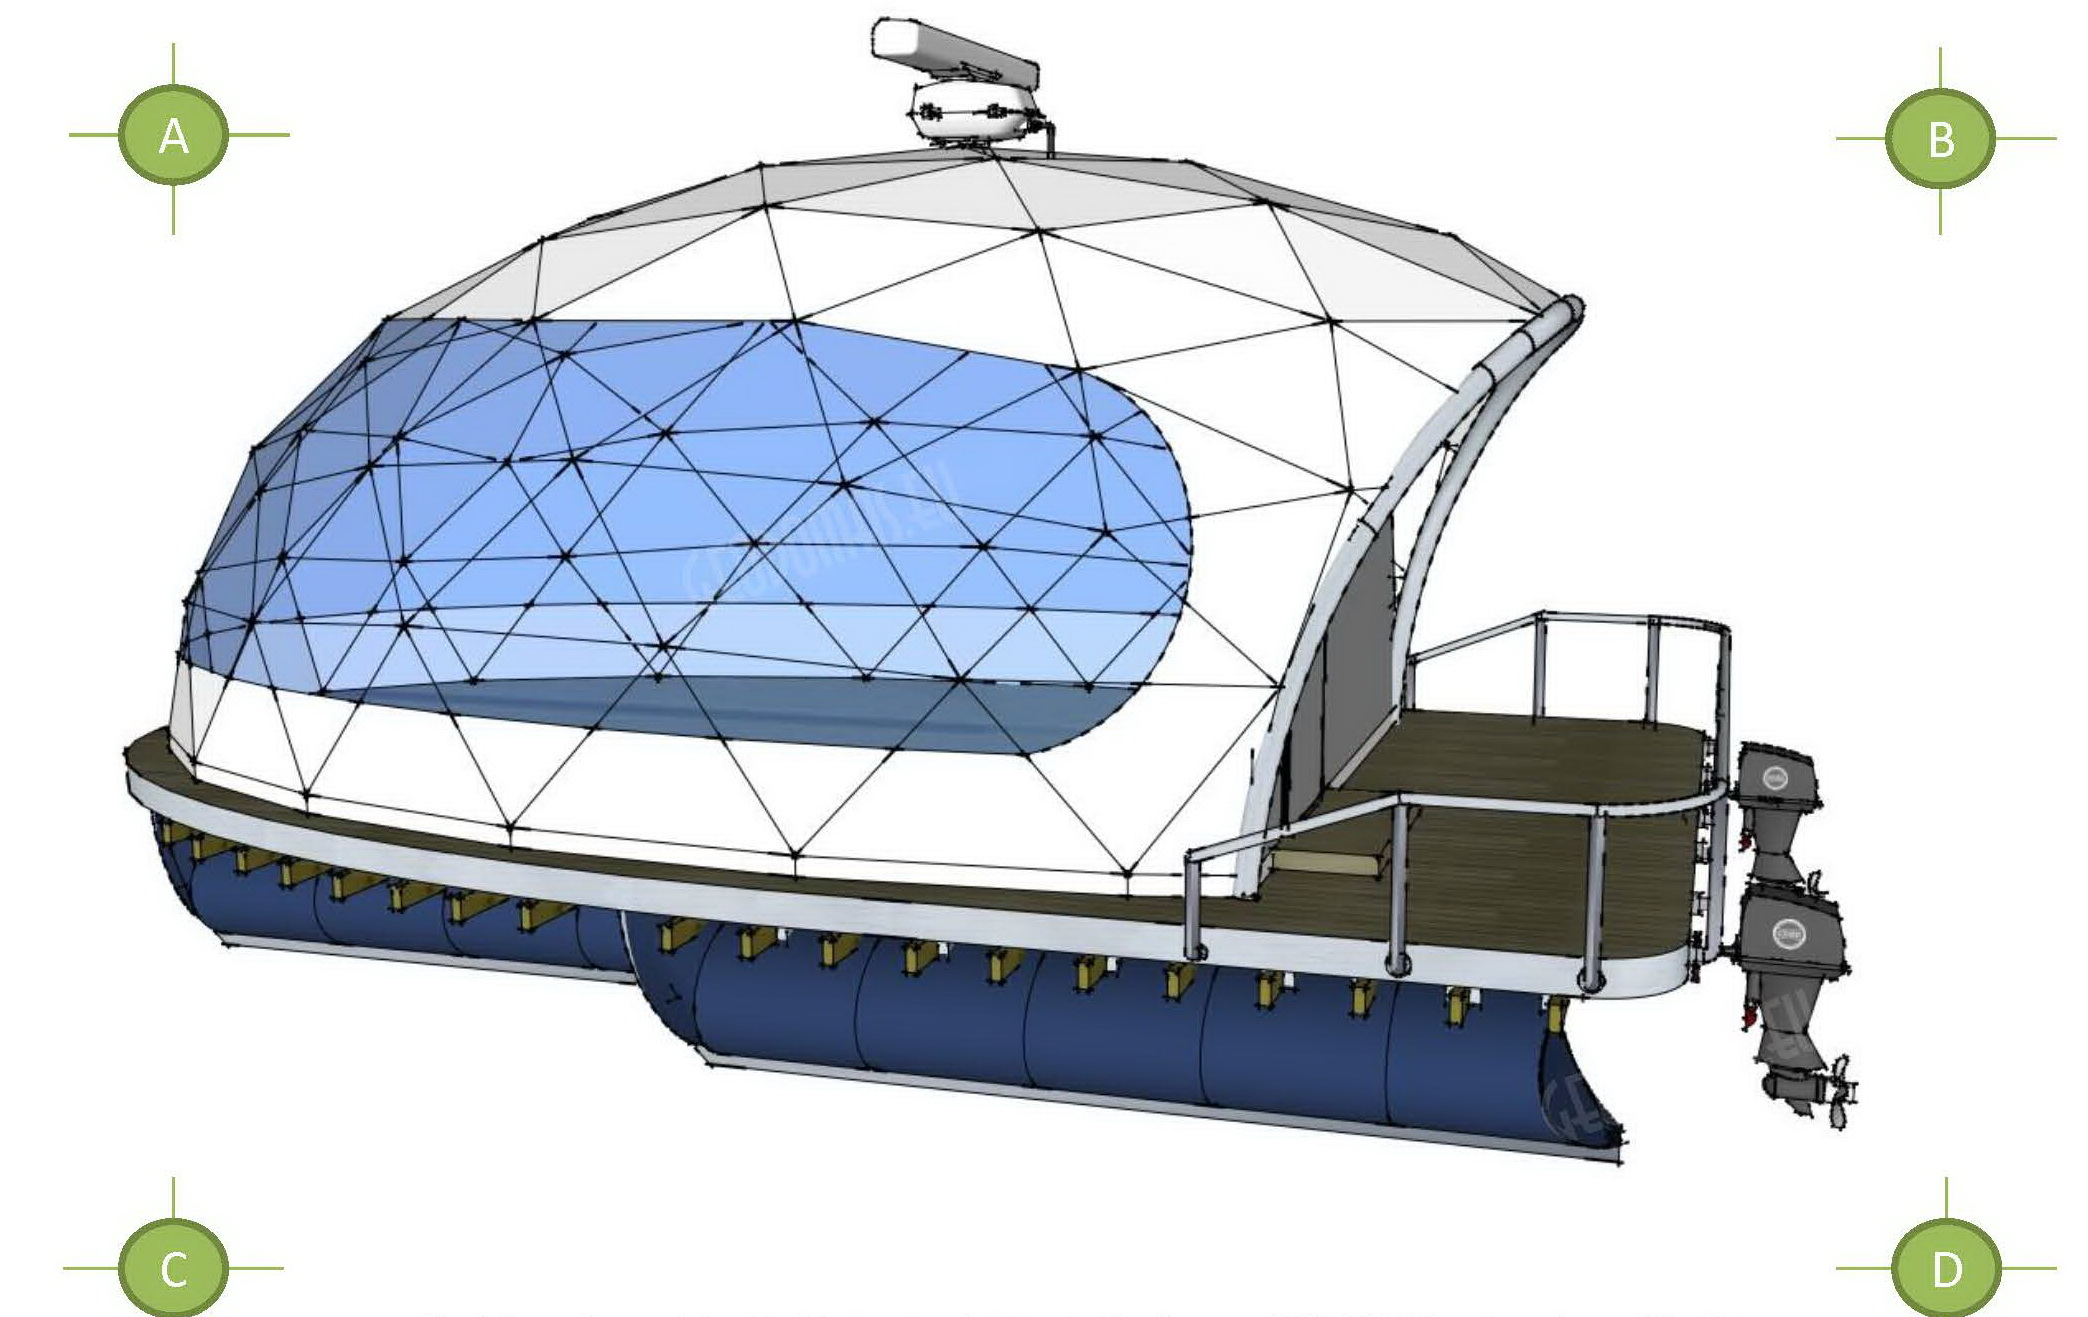 27m² Floating Glamping Dome Ø7m | Recreational Yacht, Trakai